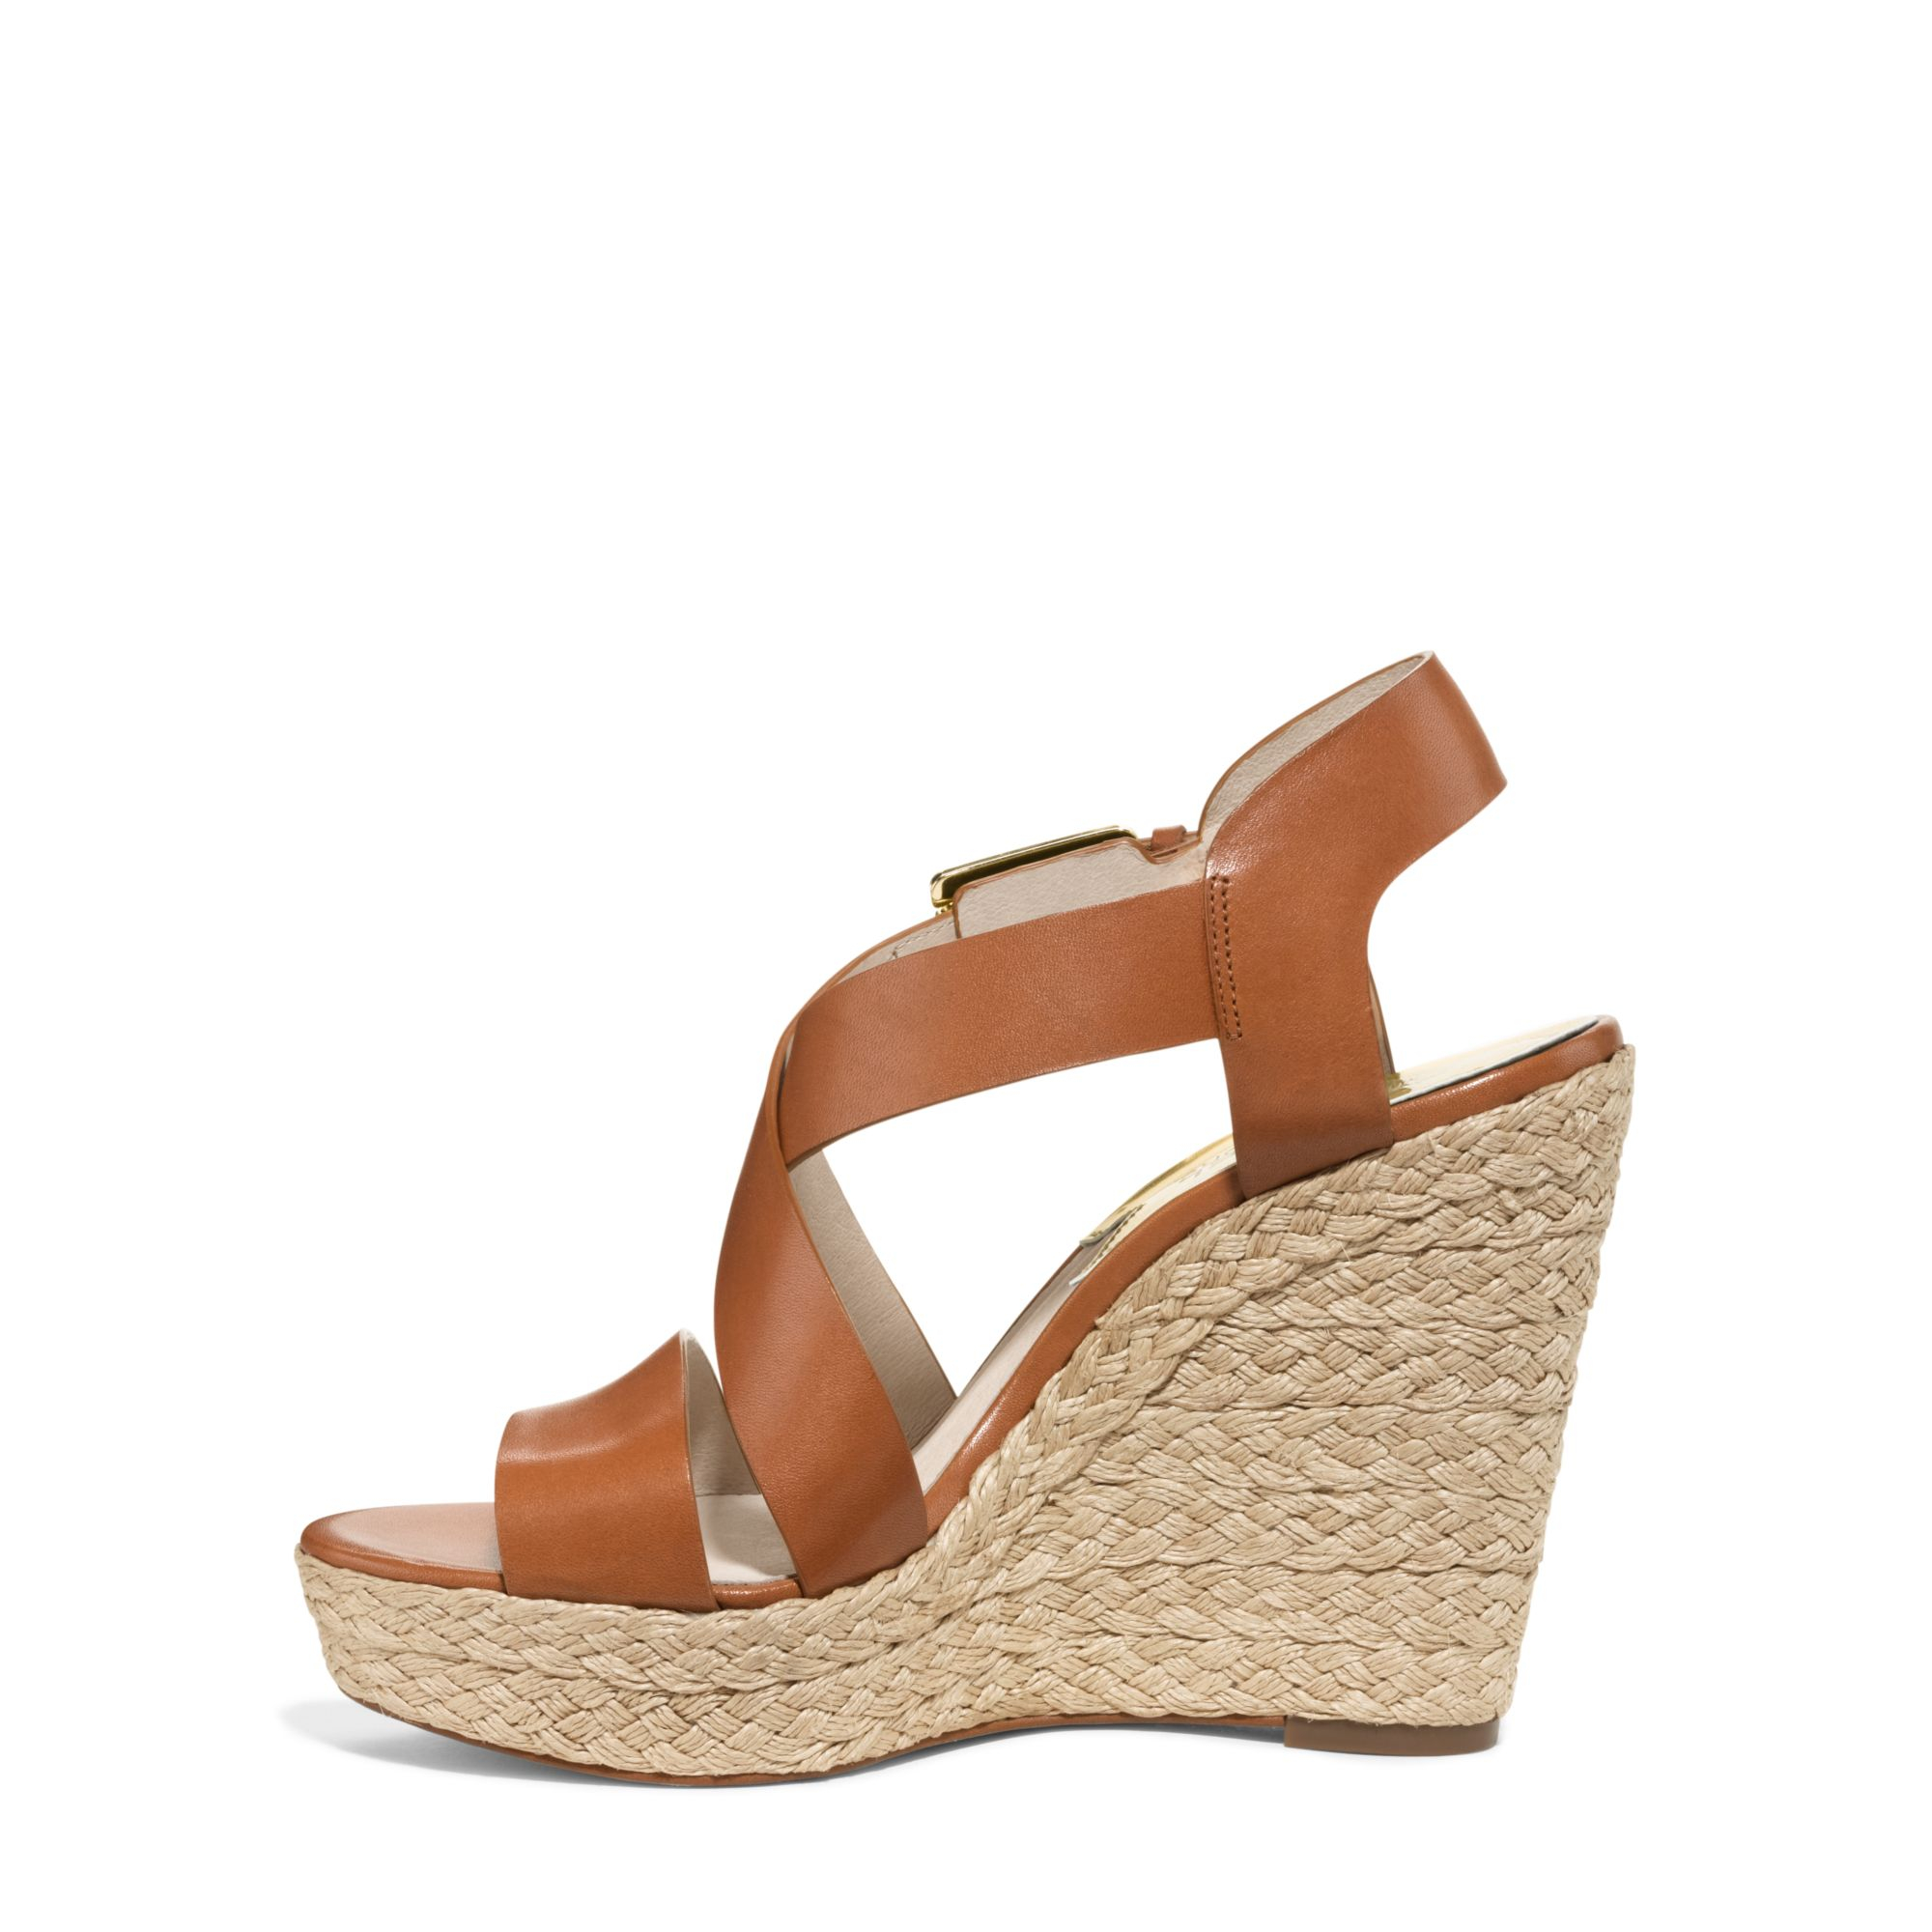 62e7d4182f8 Michael Kors Brown Giovanna Leather Espadrille Wedge Sandal